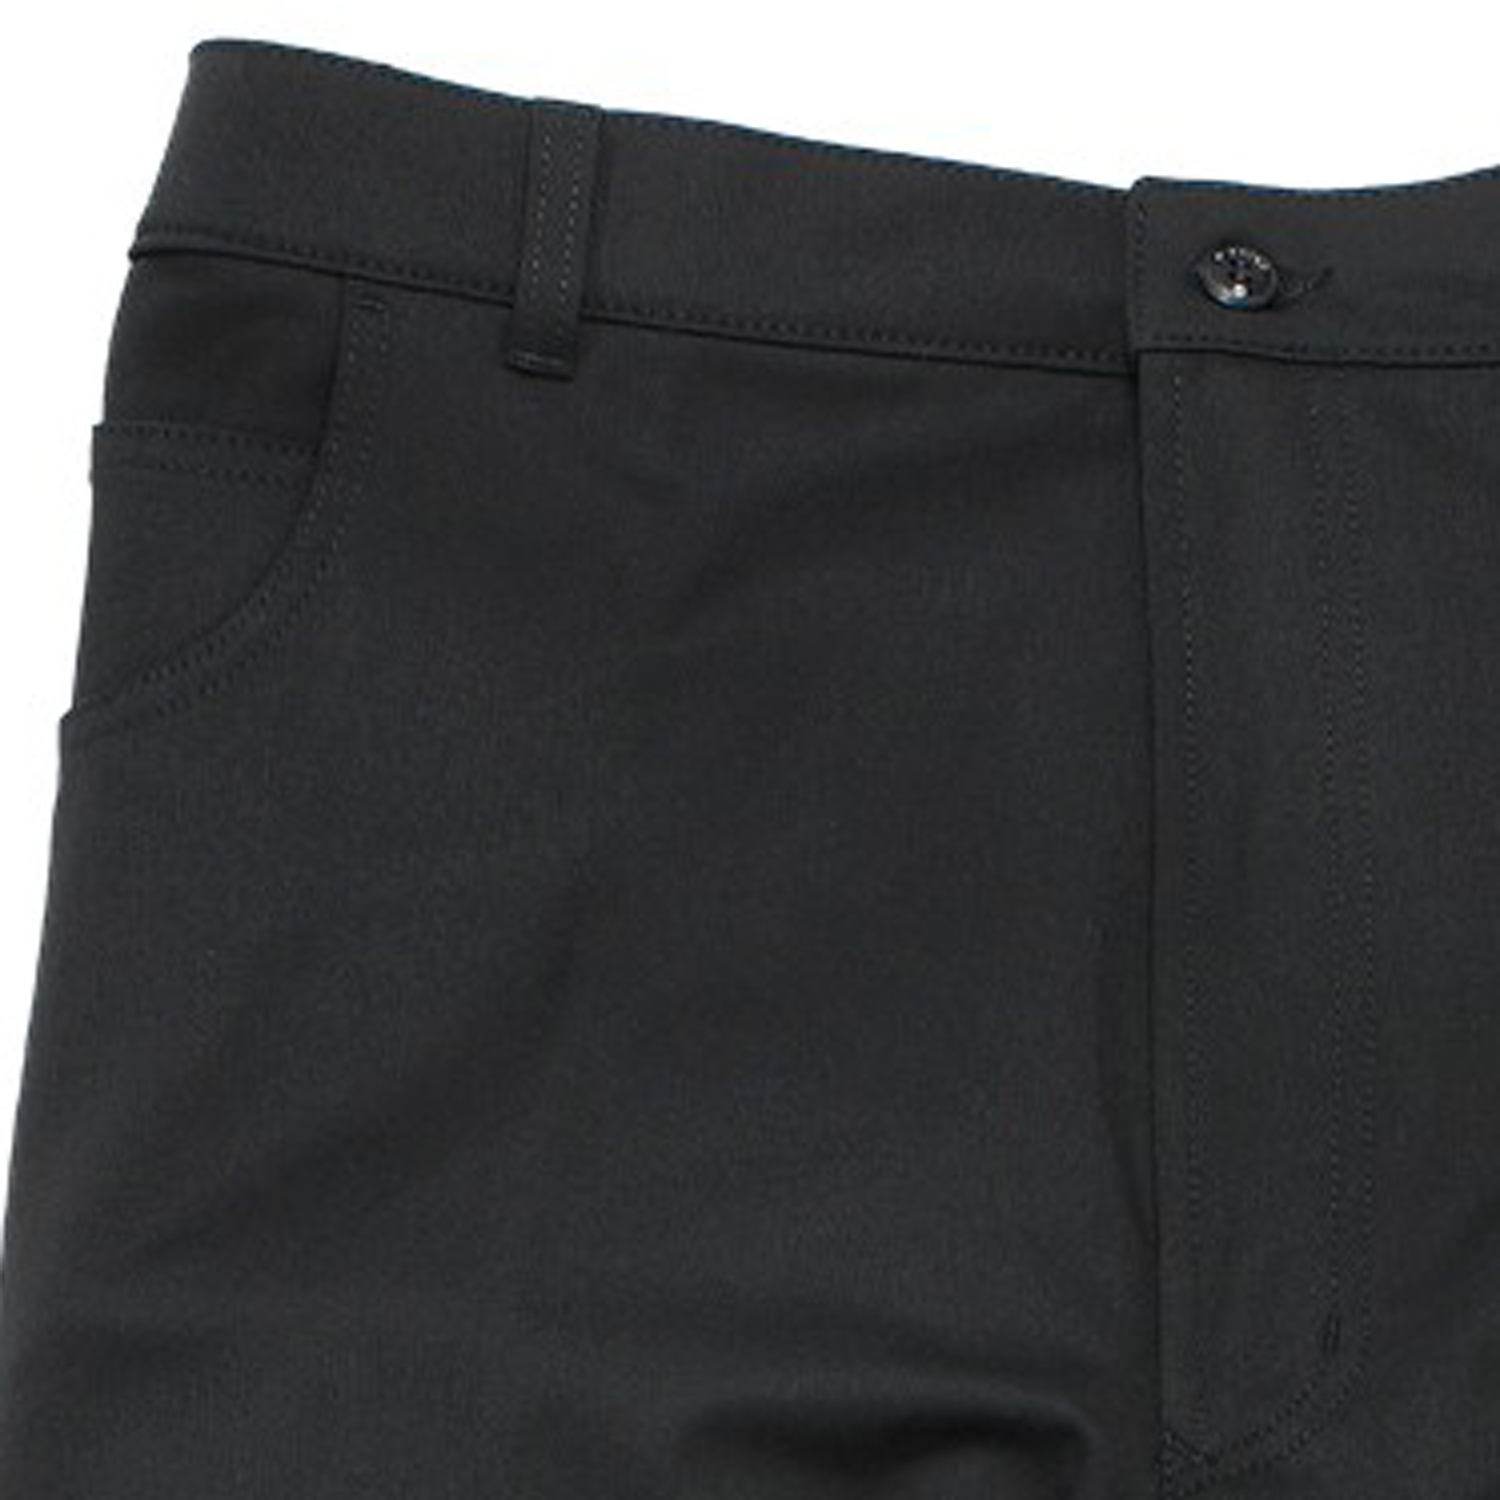 Detail Image to Sporty trousers in black by Pionier in oversizes until 36 and 64